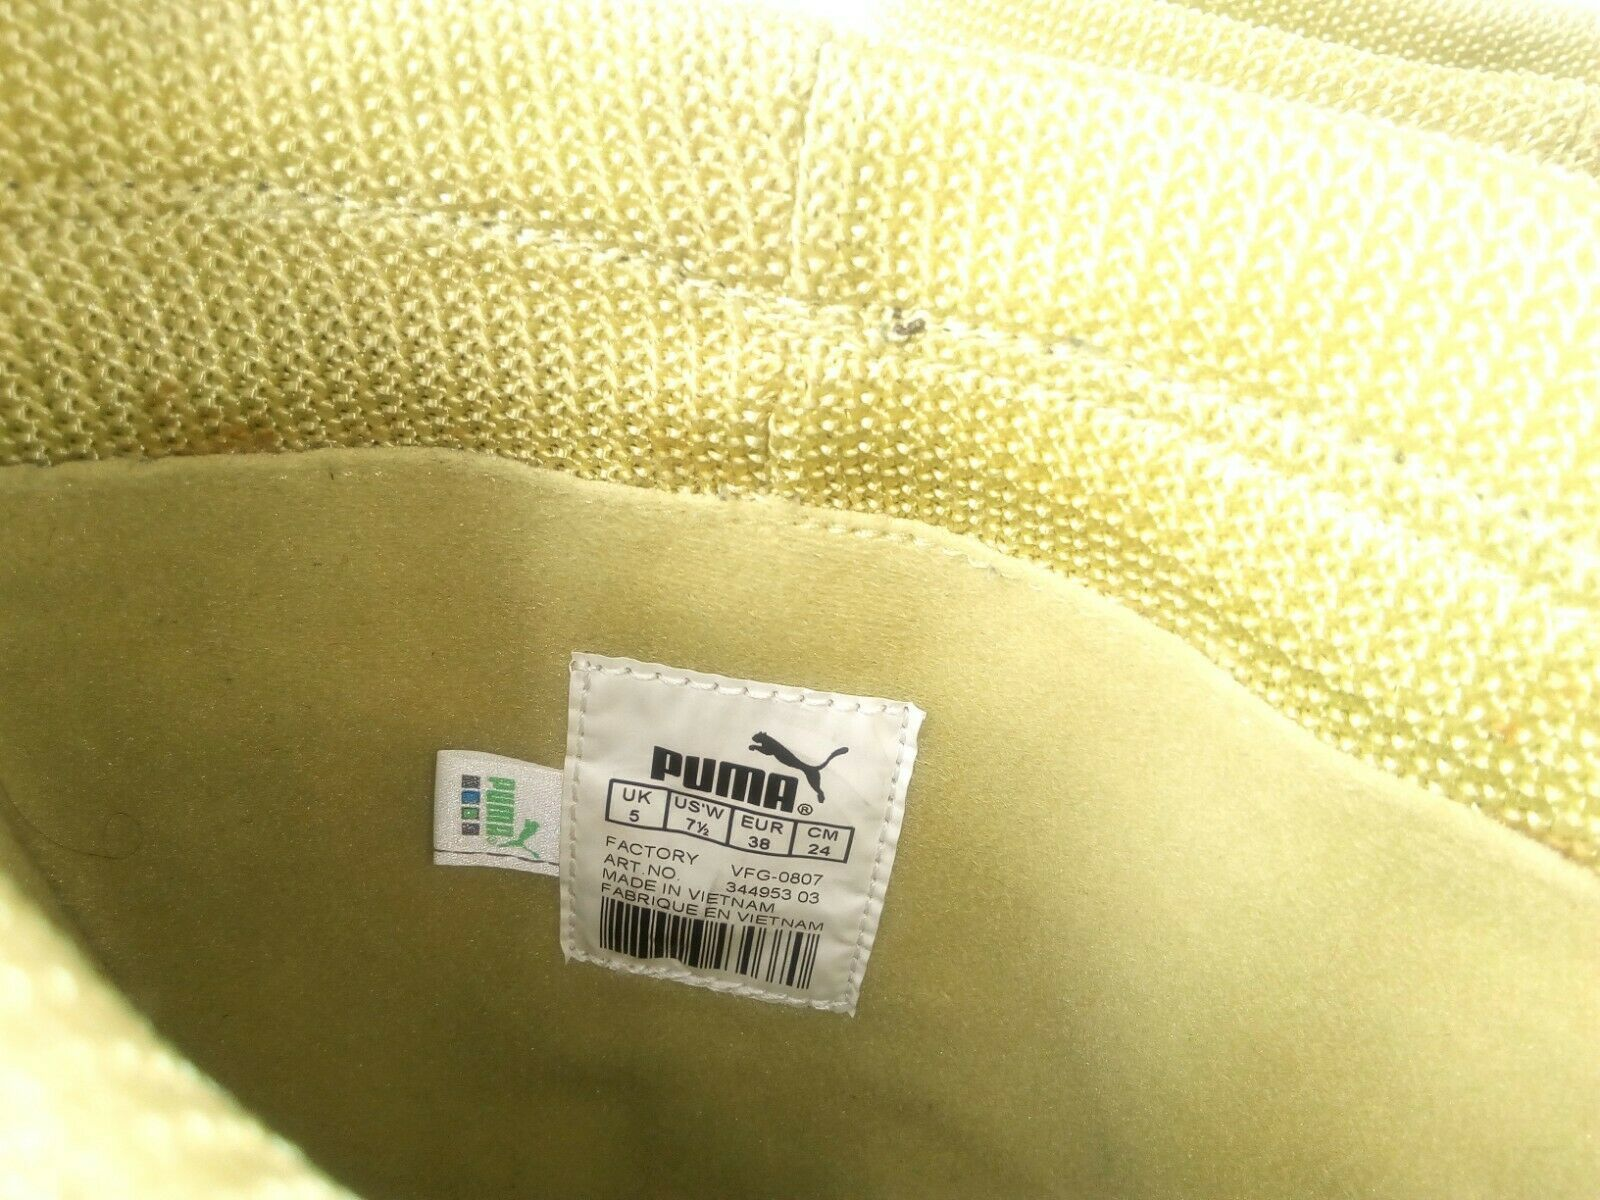 Puma Women's Boots Monsoon Tall Leather Embroidered Brown/Green Booties 7.5 W image 7